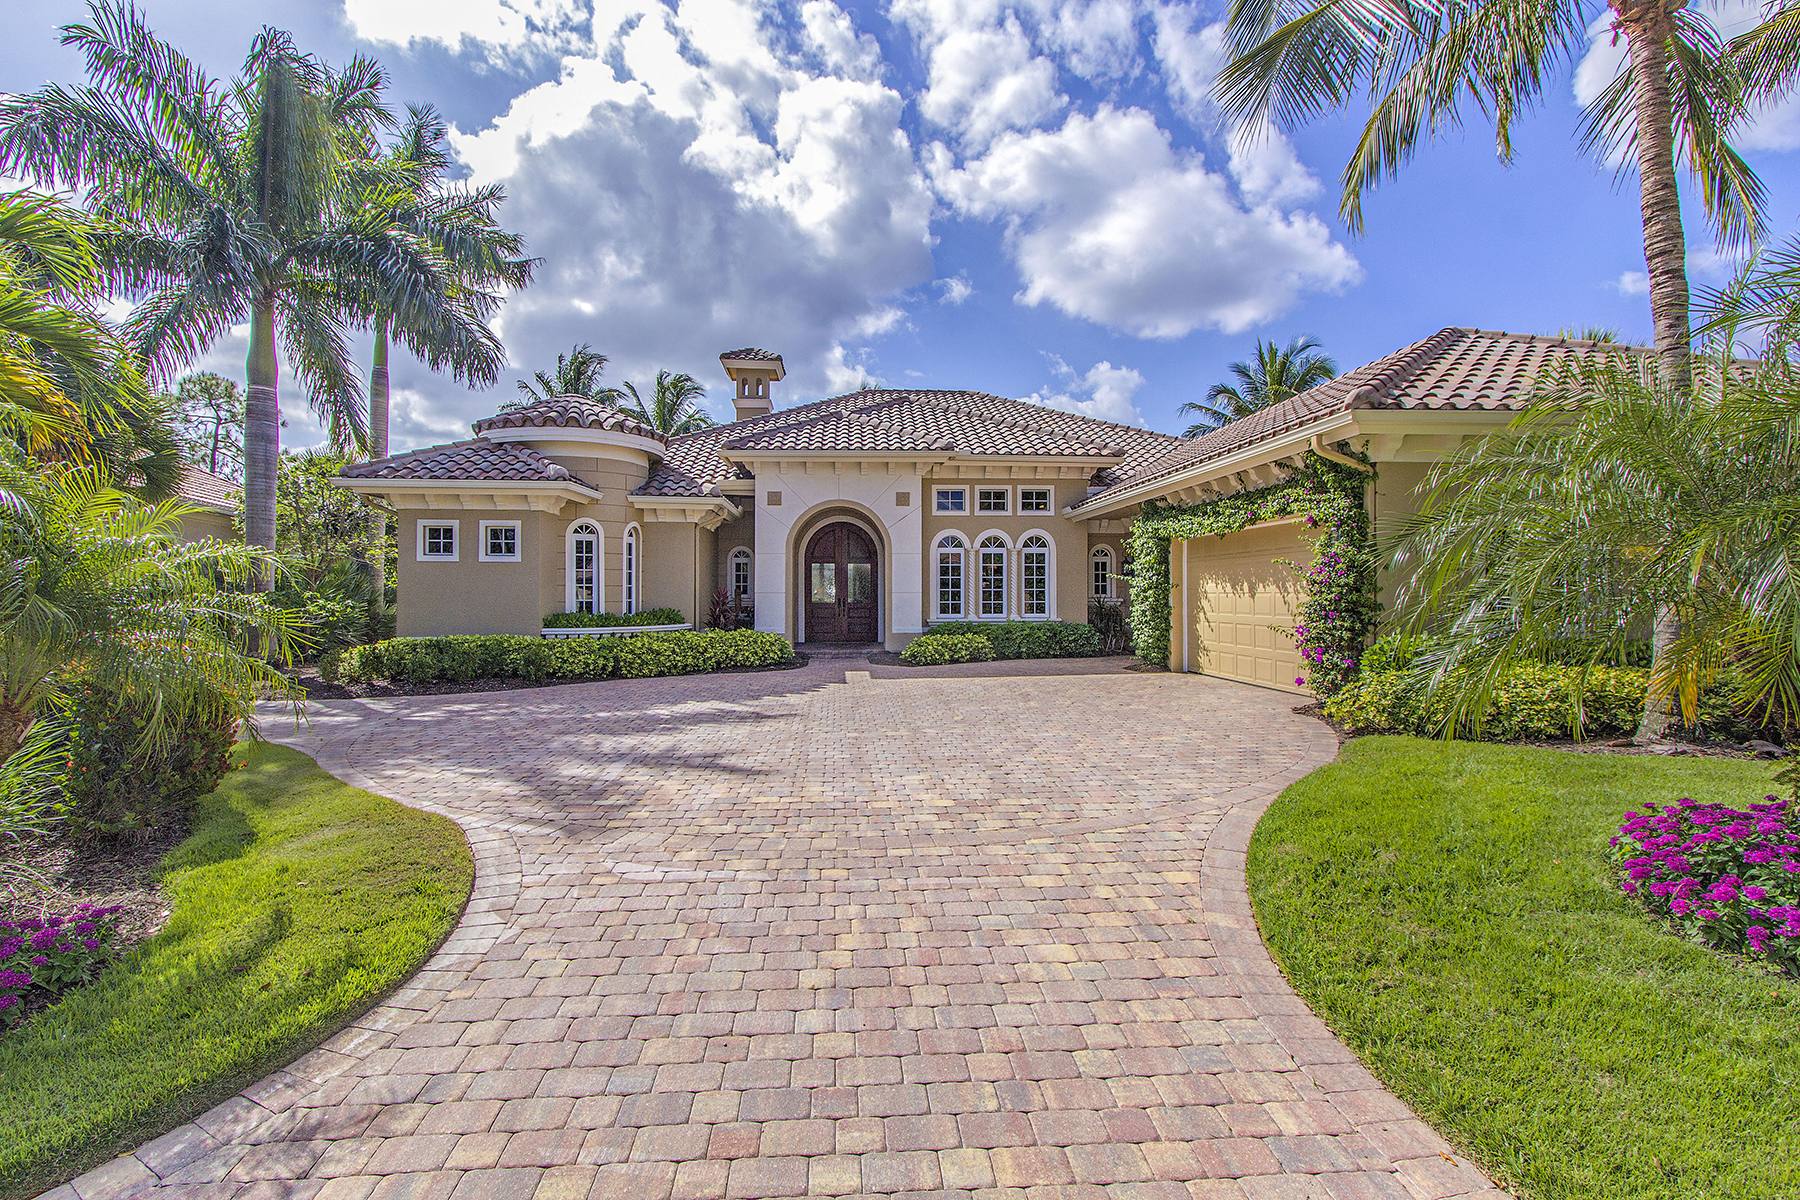 Single Family Home for Sale at Naples 2906 Leonardo Ave Naples, Florida, 34119 United States